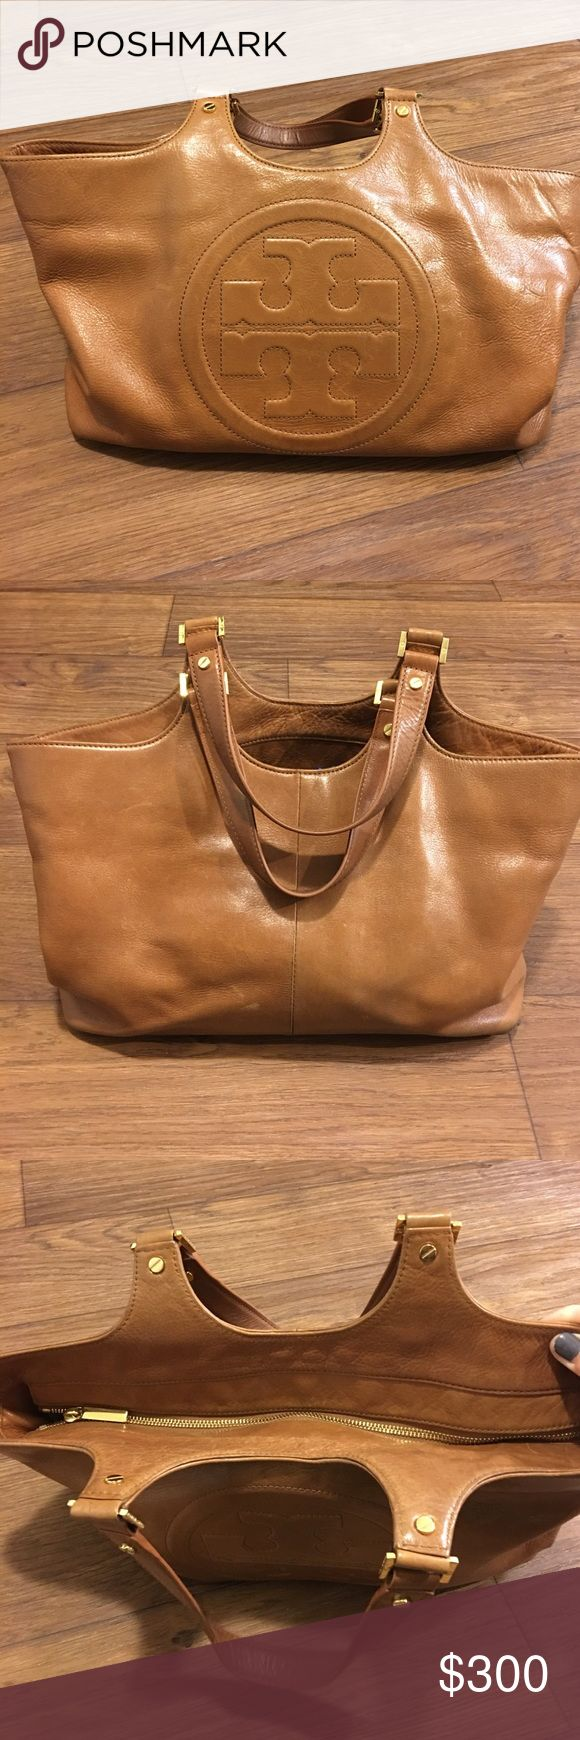 Tory Butch Bombe leather handbag w/duster! Used Tory Butch Tan Bombe leather handbag w/duster! I actually can't really believe I am listing this bag, it's my most favorite bag I have ever owned! It is in really good condition. This is a fabulous leather handbag, one that every woman should own! No trades, sorry. Tory Burch Bags Satchels